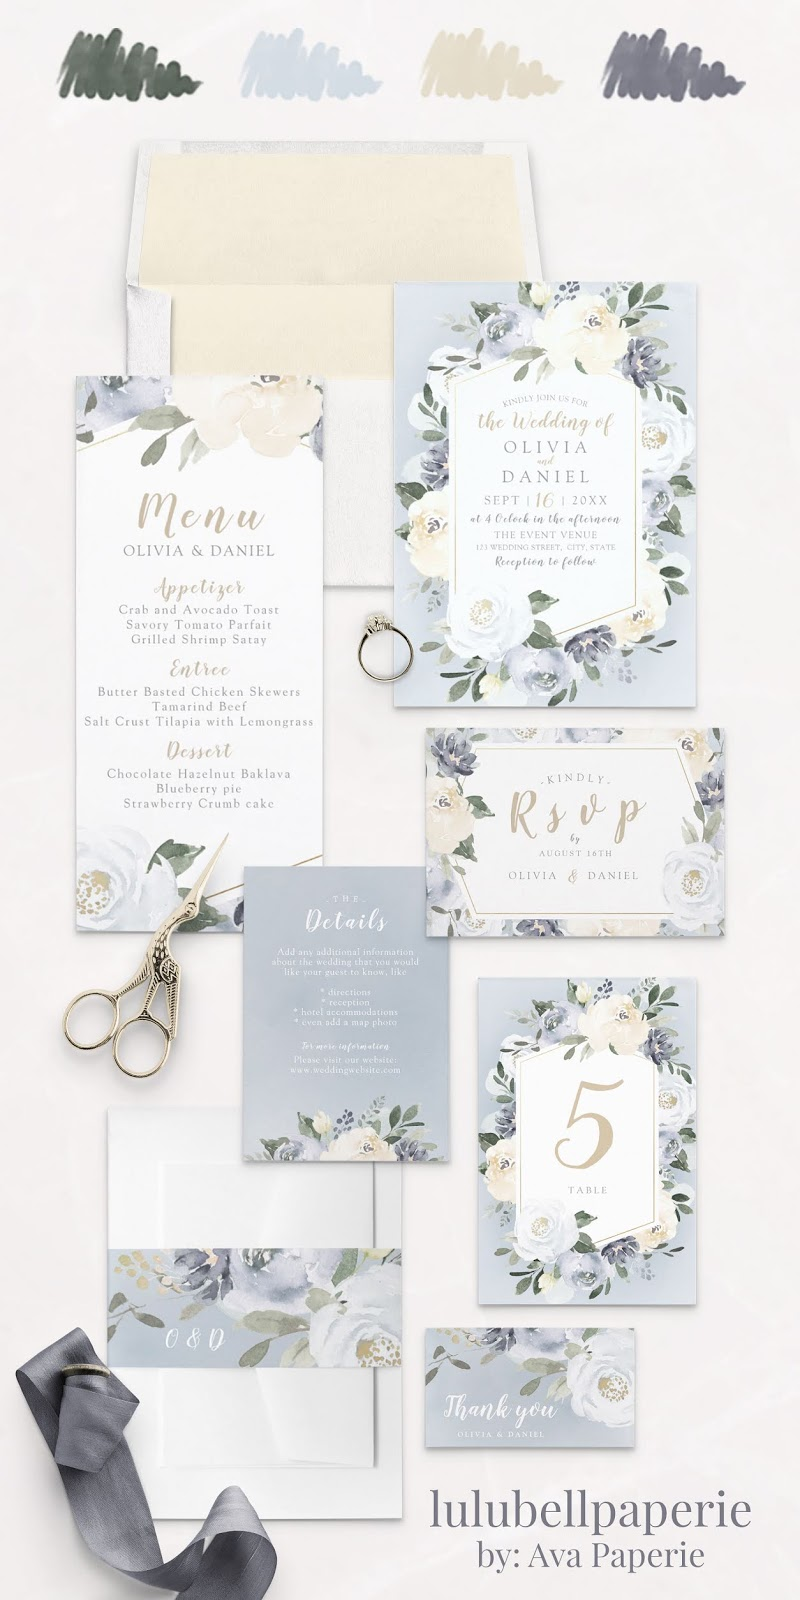 Dusty Blue Yellow and Green Botanical Floral Wedding Invitation Suite - Invites, Menus, RSVP Cards, Details Card, Table Numbers, Belly Band Wraps, and Thank You Cards